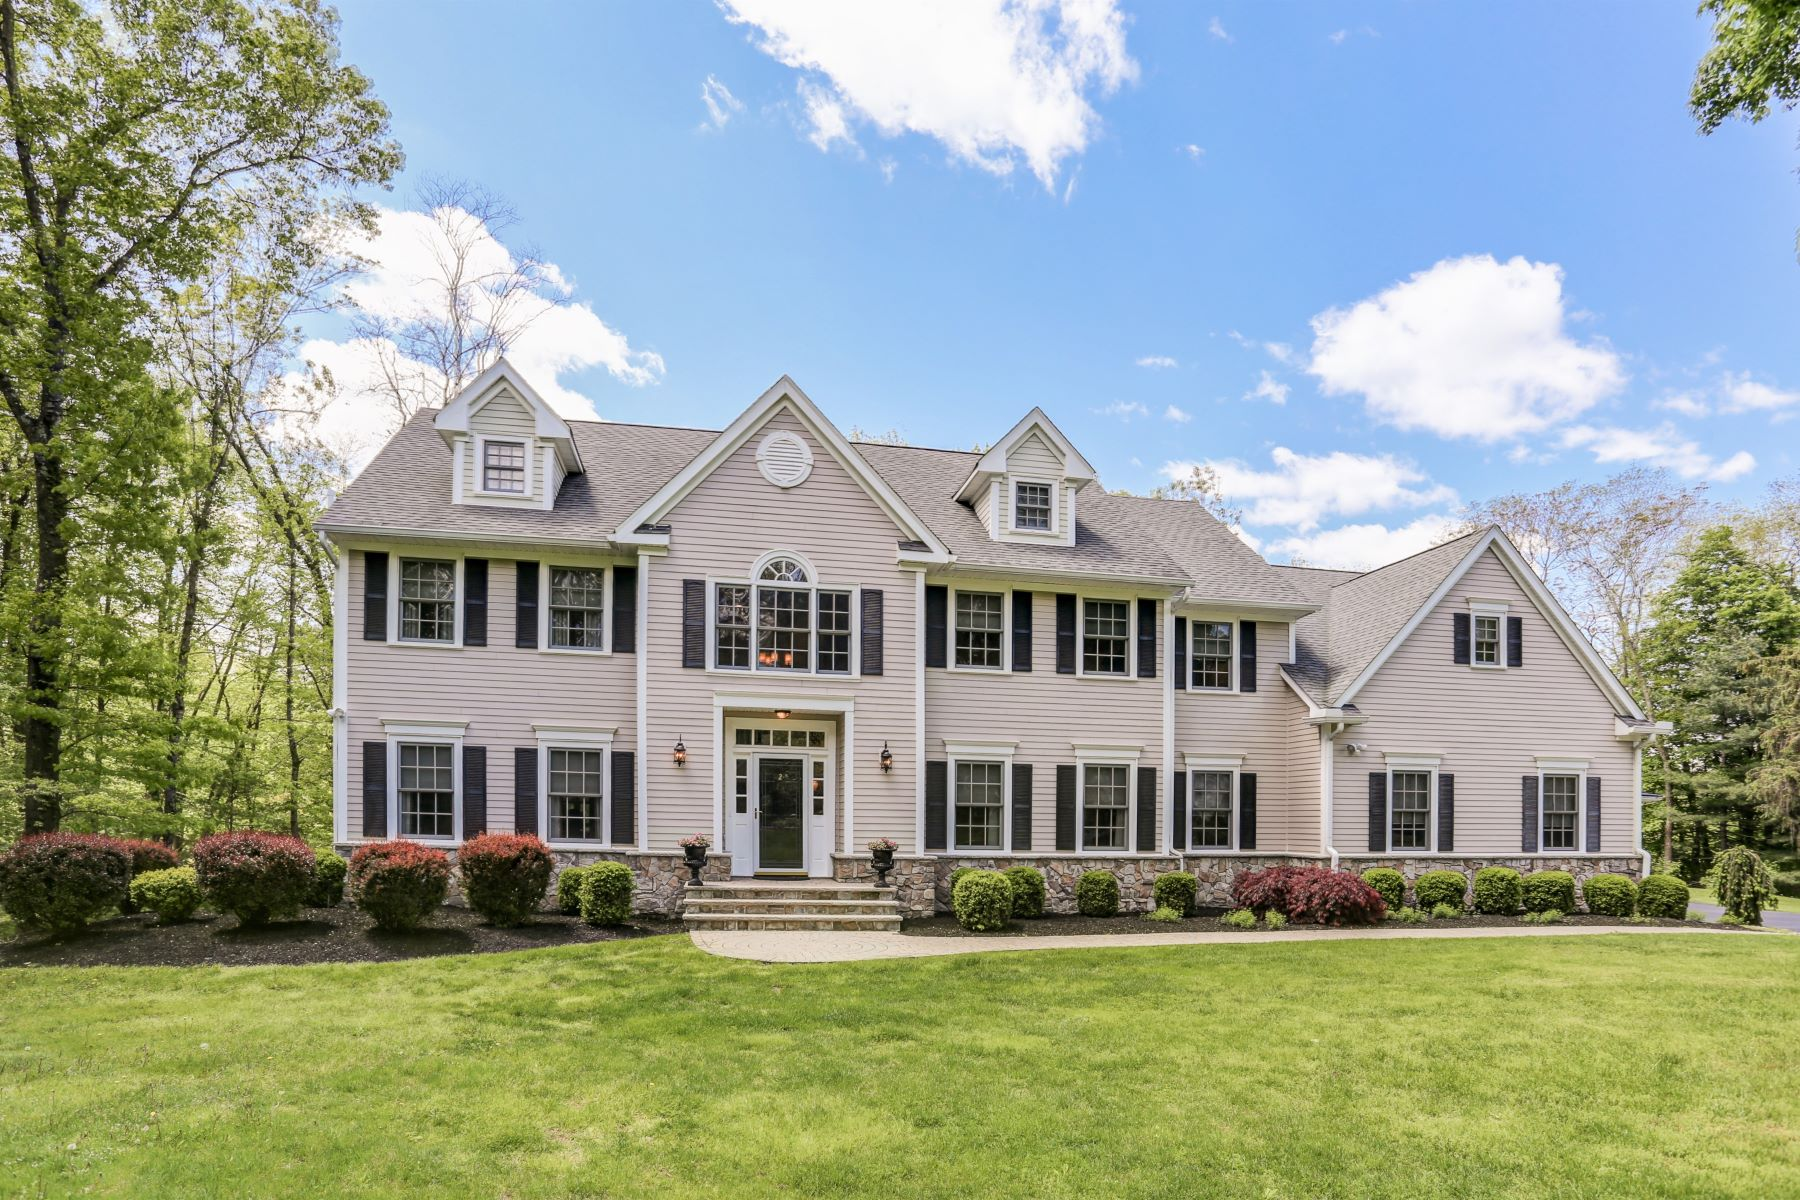 Single Family Homes for Active at Meticulously maintained Colonial home 2 Farmhouse Lane Mendham Borough, New Jersey 07945 United States